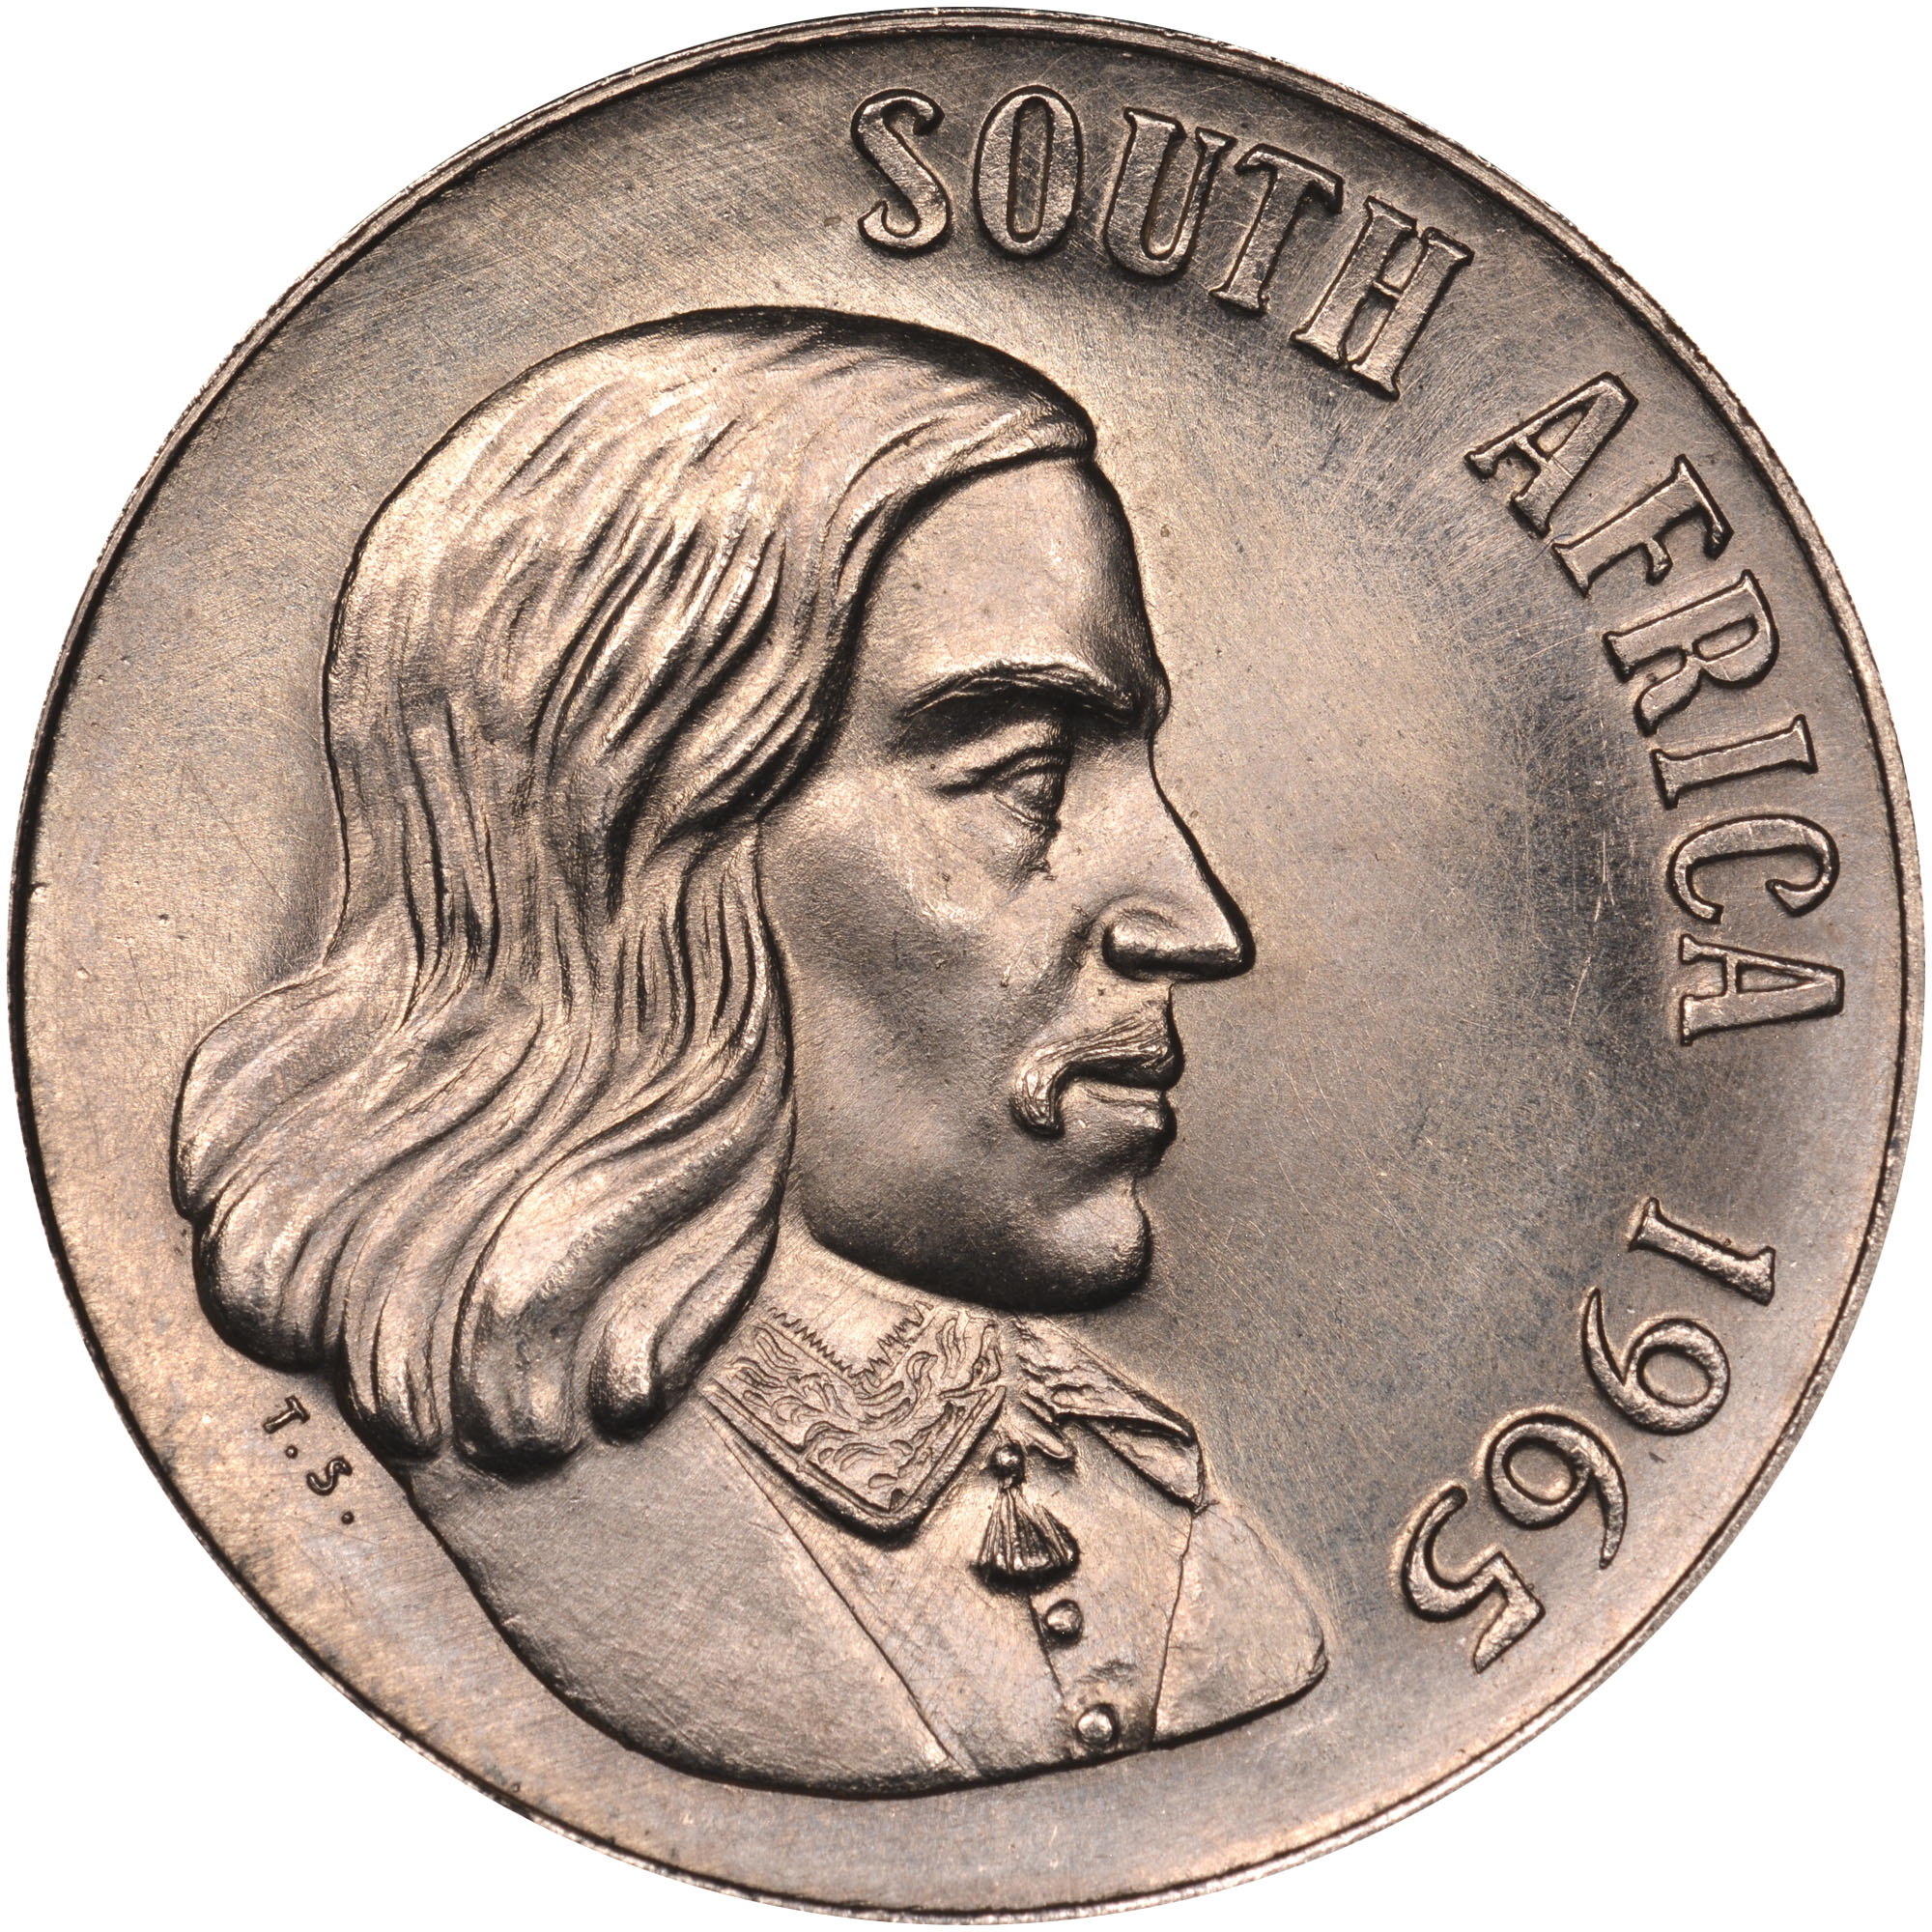 Found An Old South African 20 Cent Coin That I Never